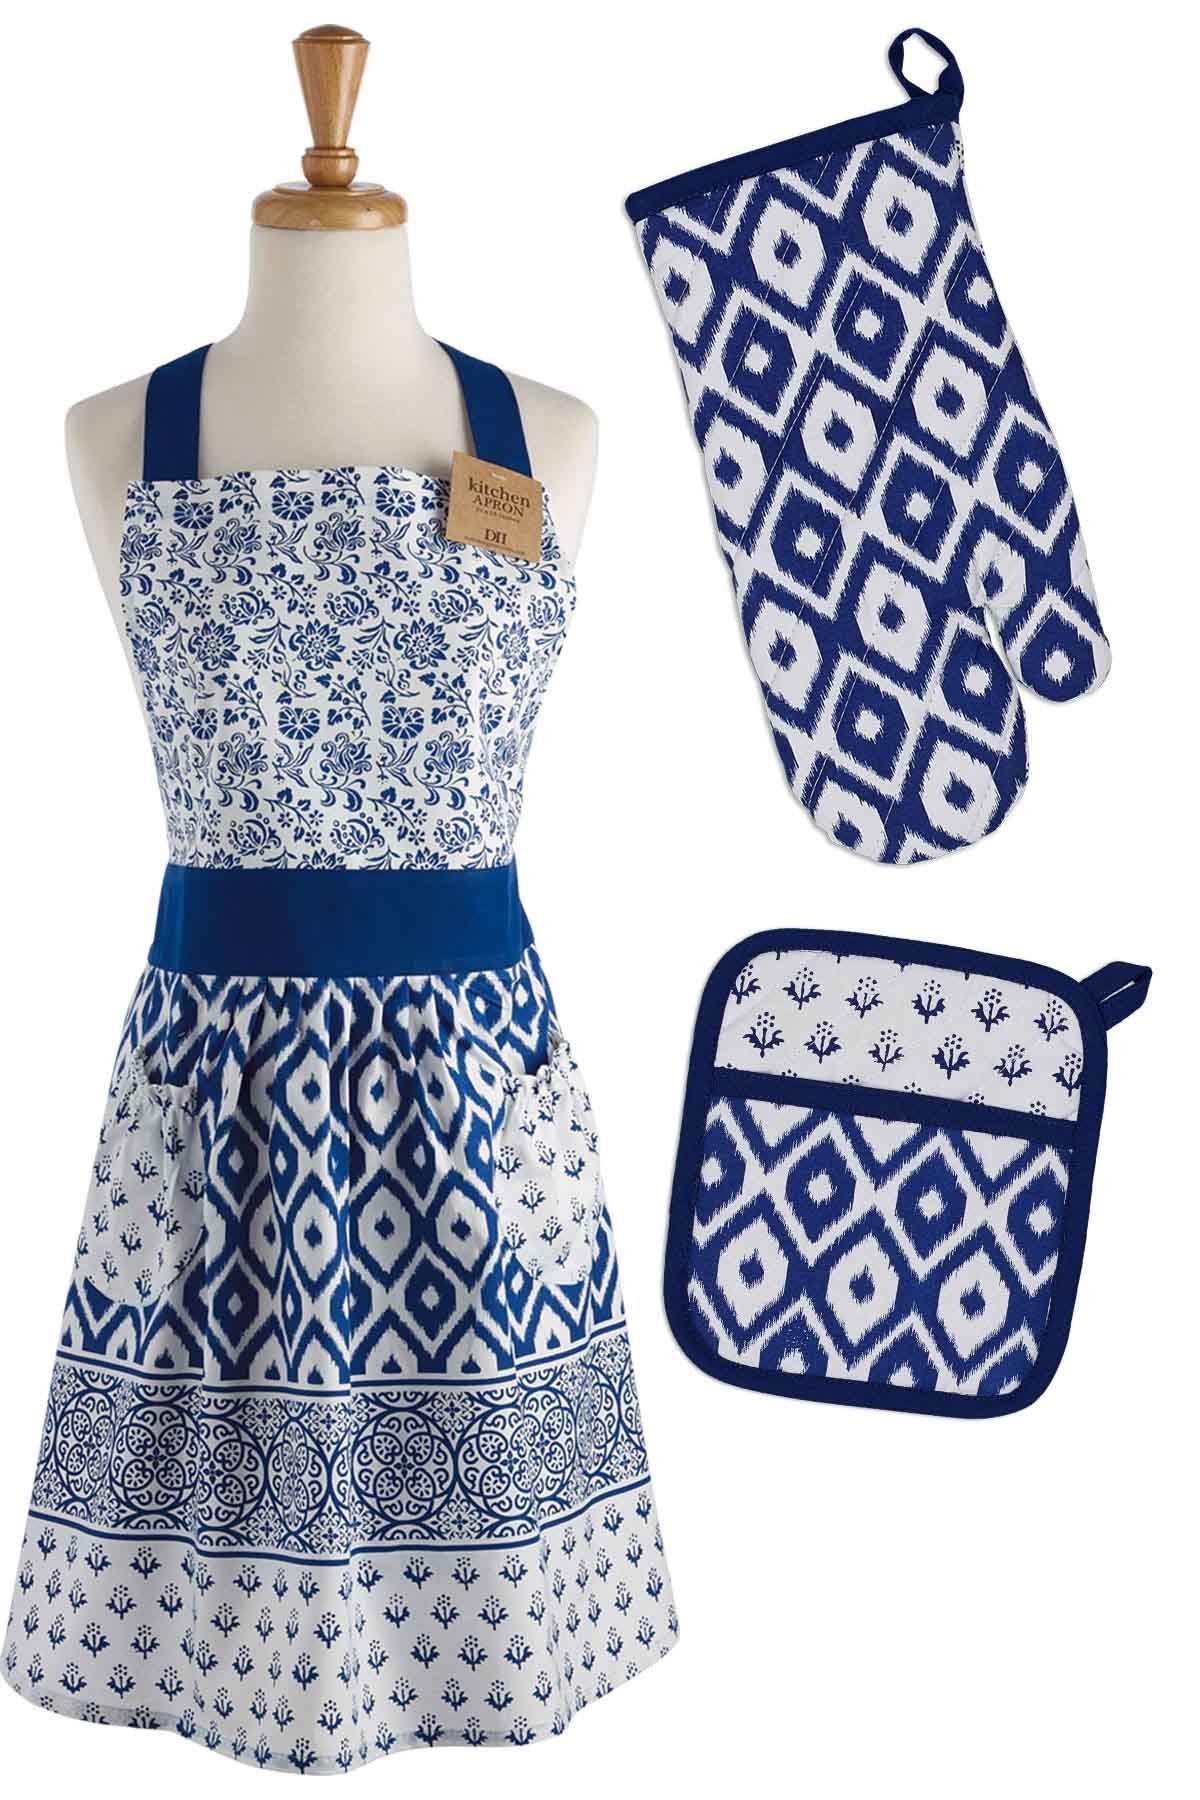 DII COSD35141 Cotton Gift Set, Machine Washable, Perfect for Everyday Cooking and Baking, Oven Mitt 7x11, Kitchen Apron 29x36, and Potholder 8x9, Blue Market